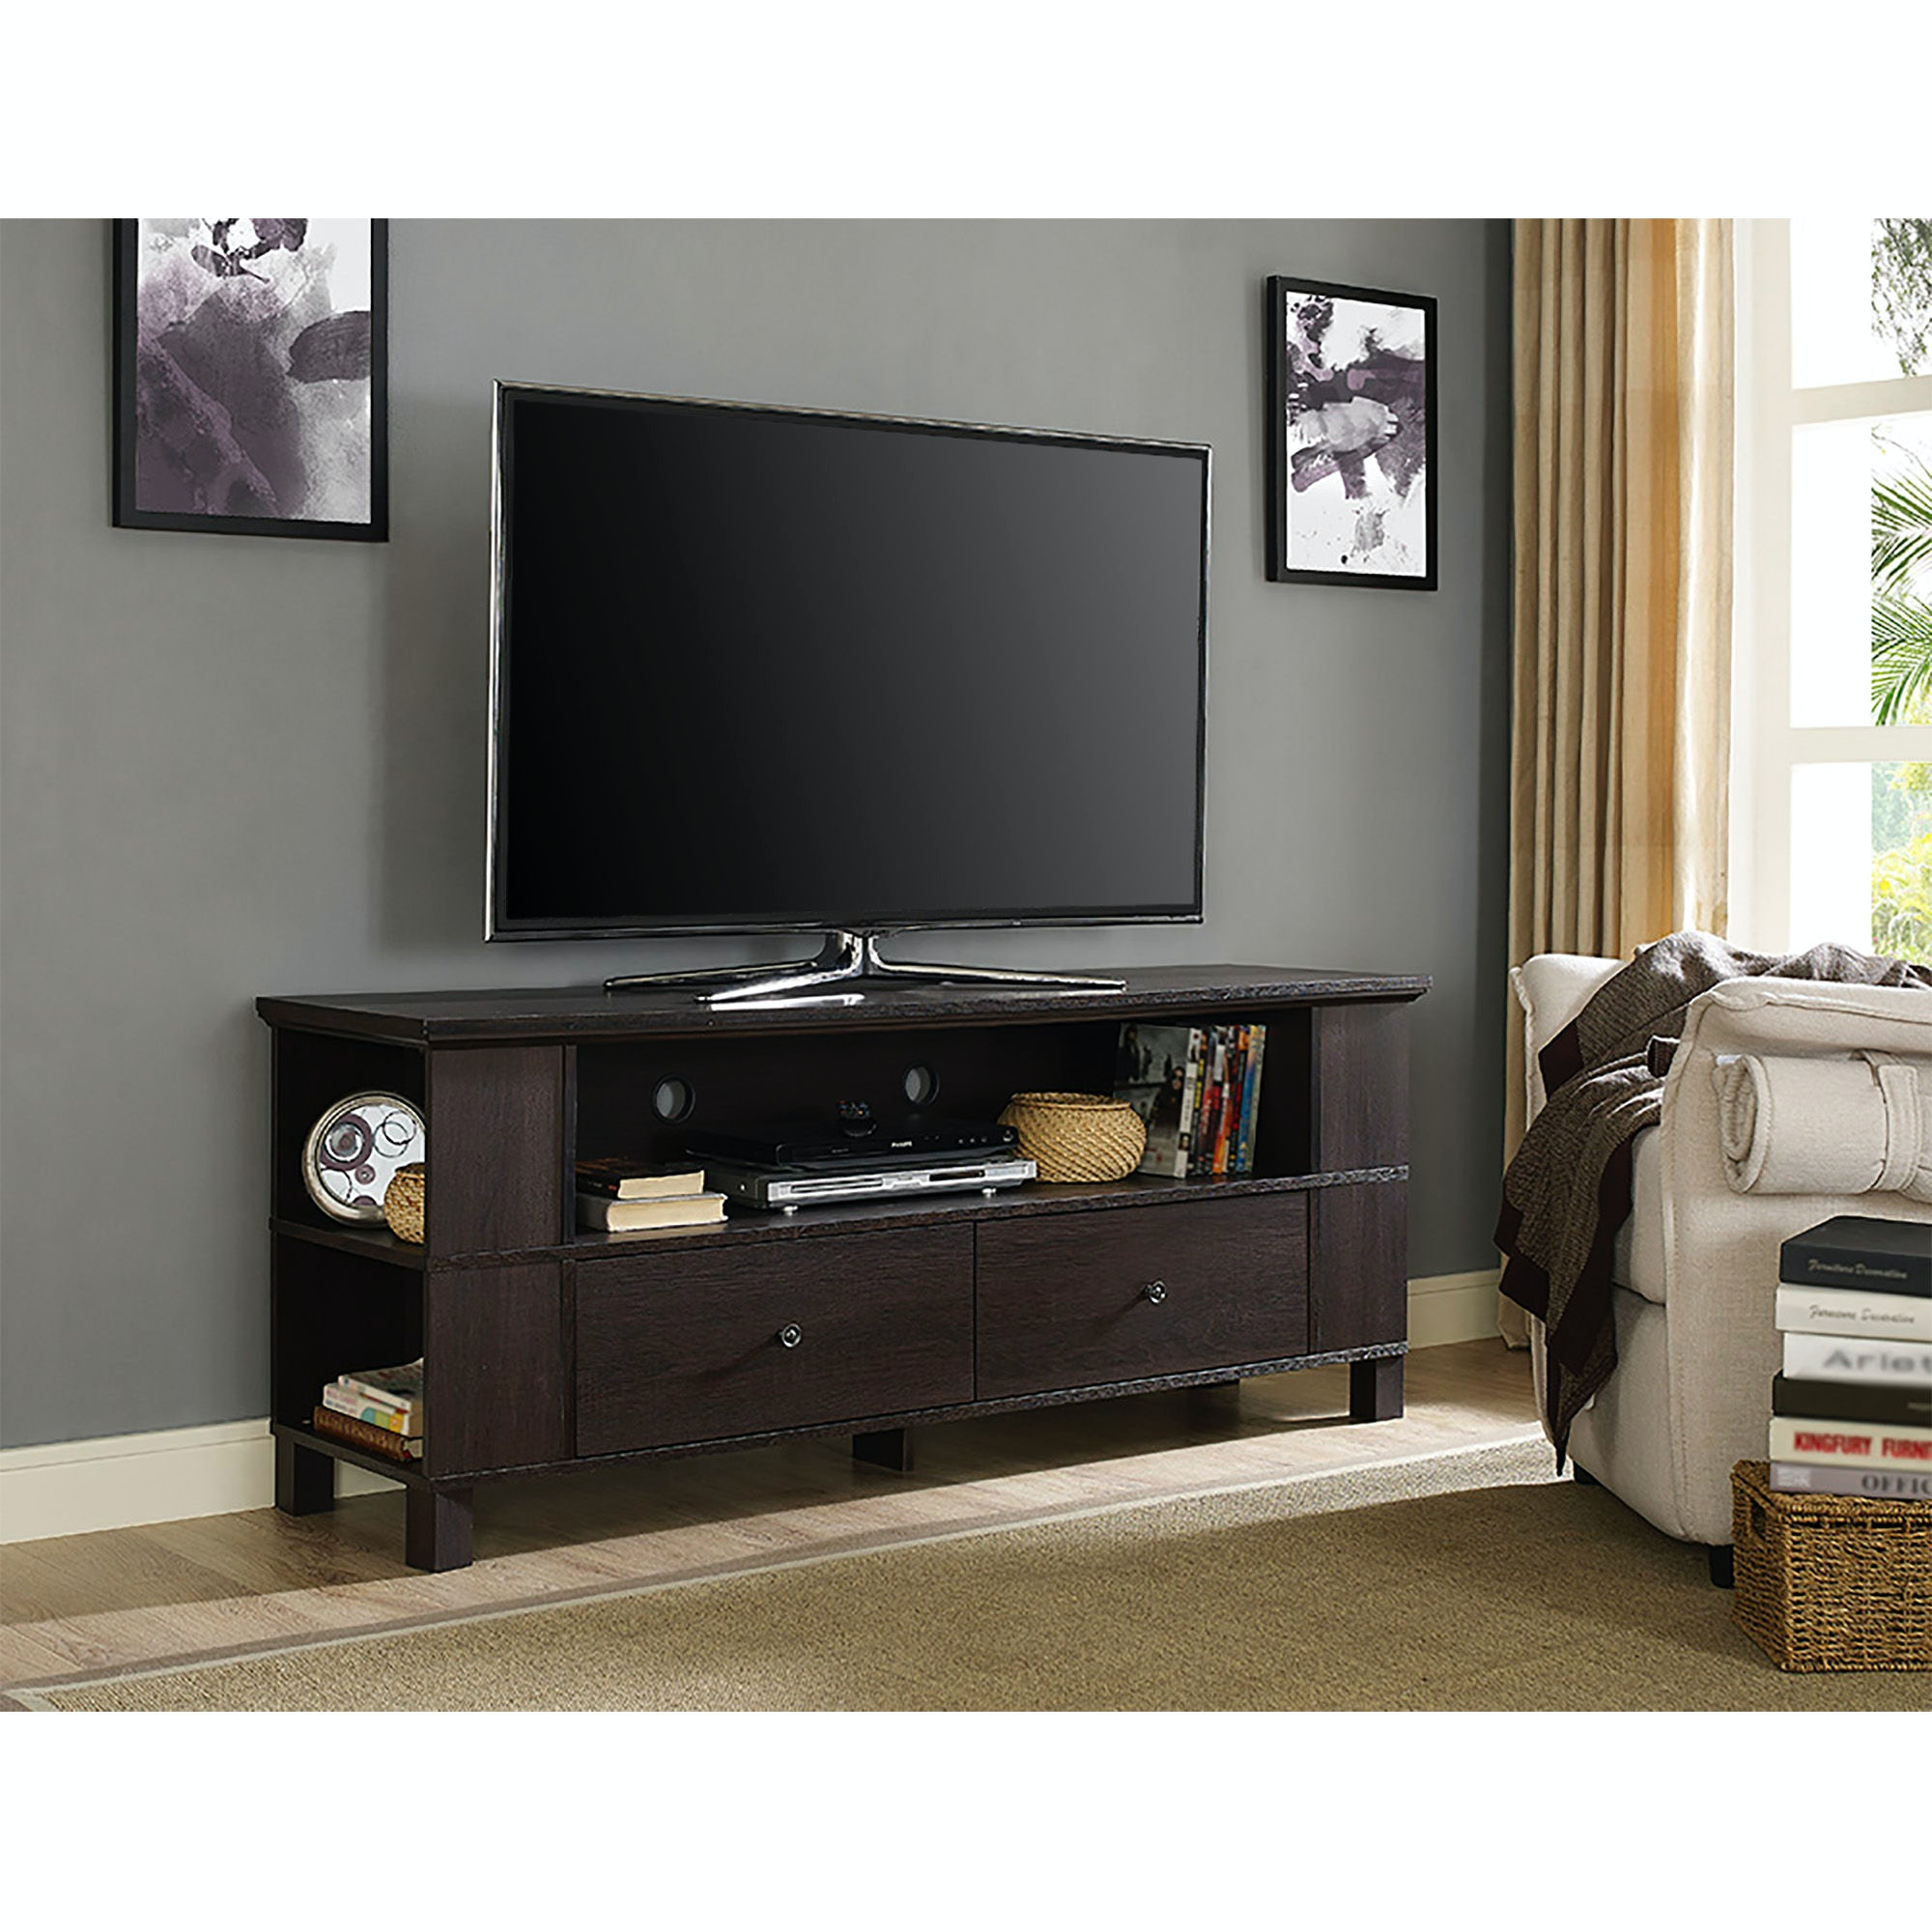 60 Wood Tv Media Stand Storage Console Espresso Wedp60cmpes